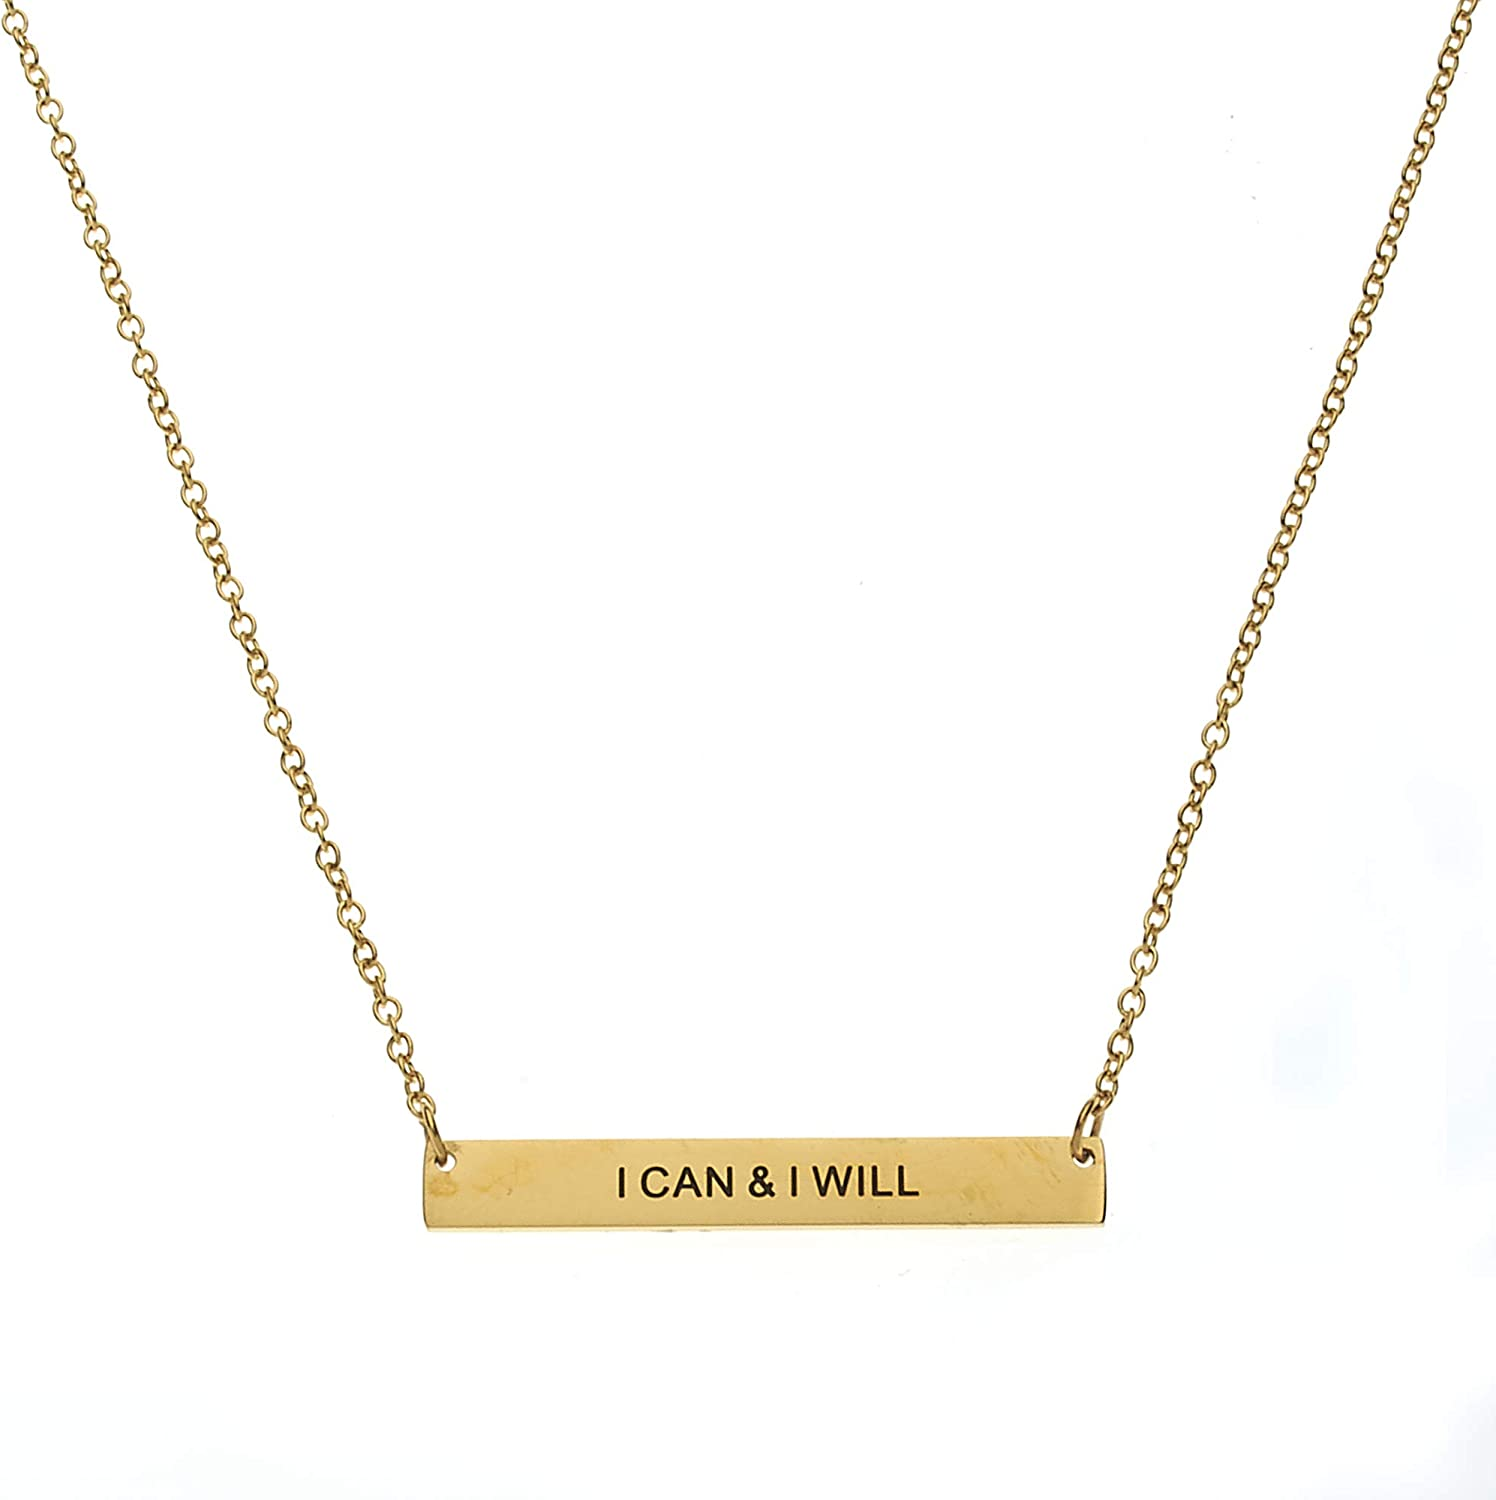 Inspirational Necklaces for Women 18 with Extender Inspirational Jewelry /& Gifts Mantra Inspirational Daily Reminder Necklaces I Can /& I Will